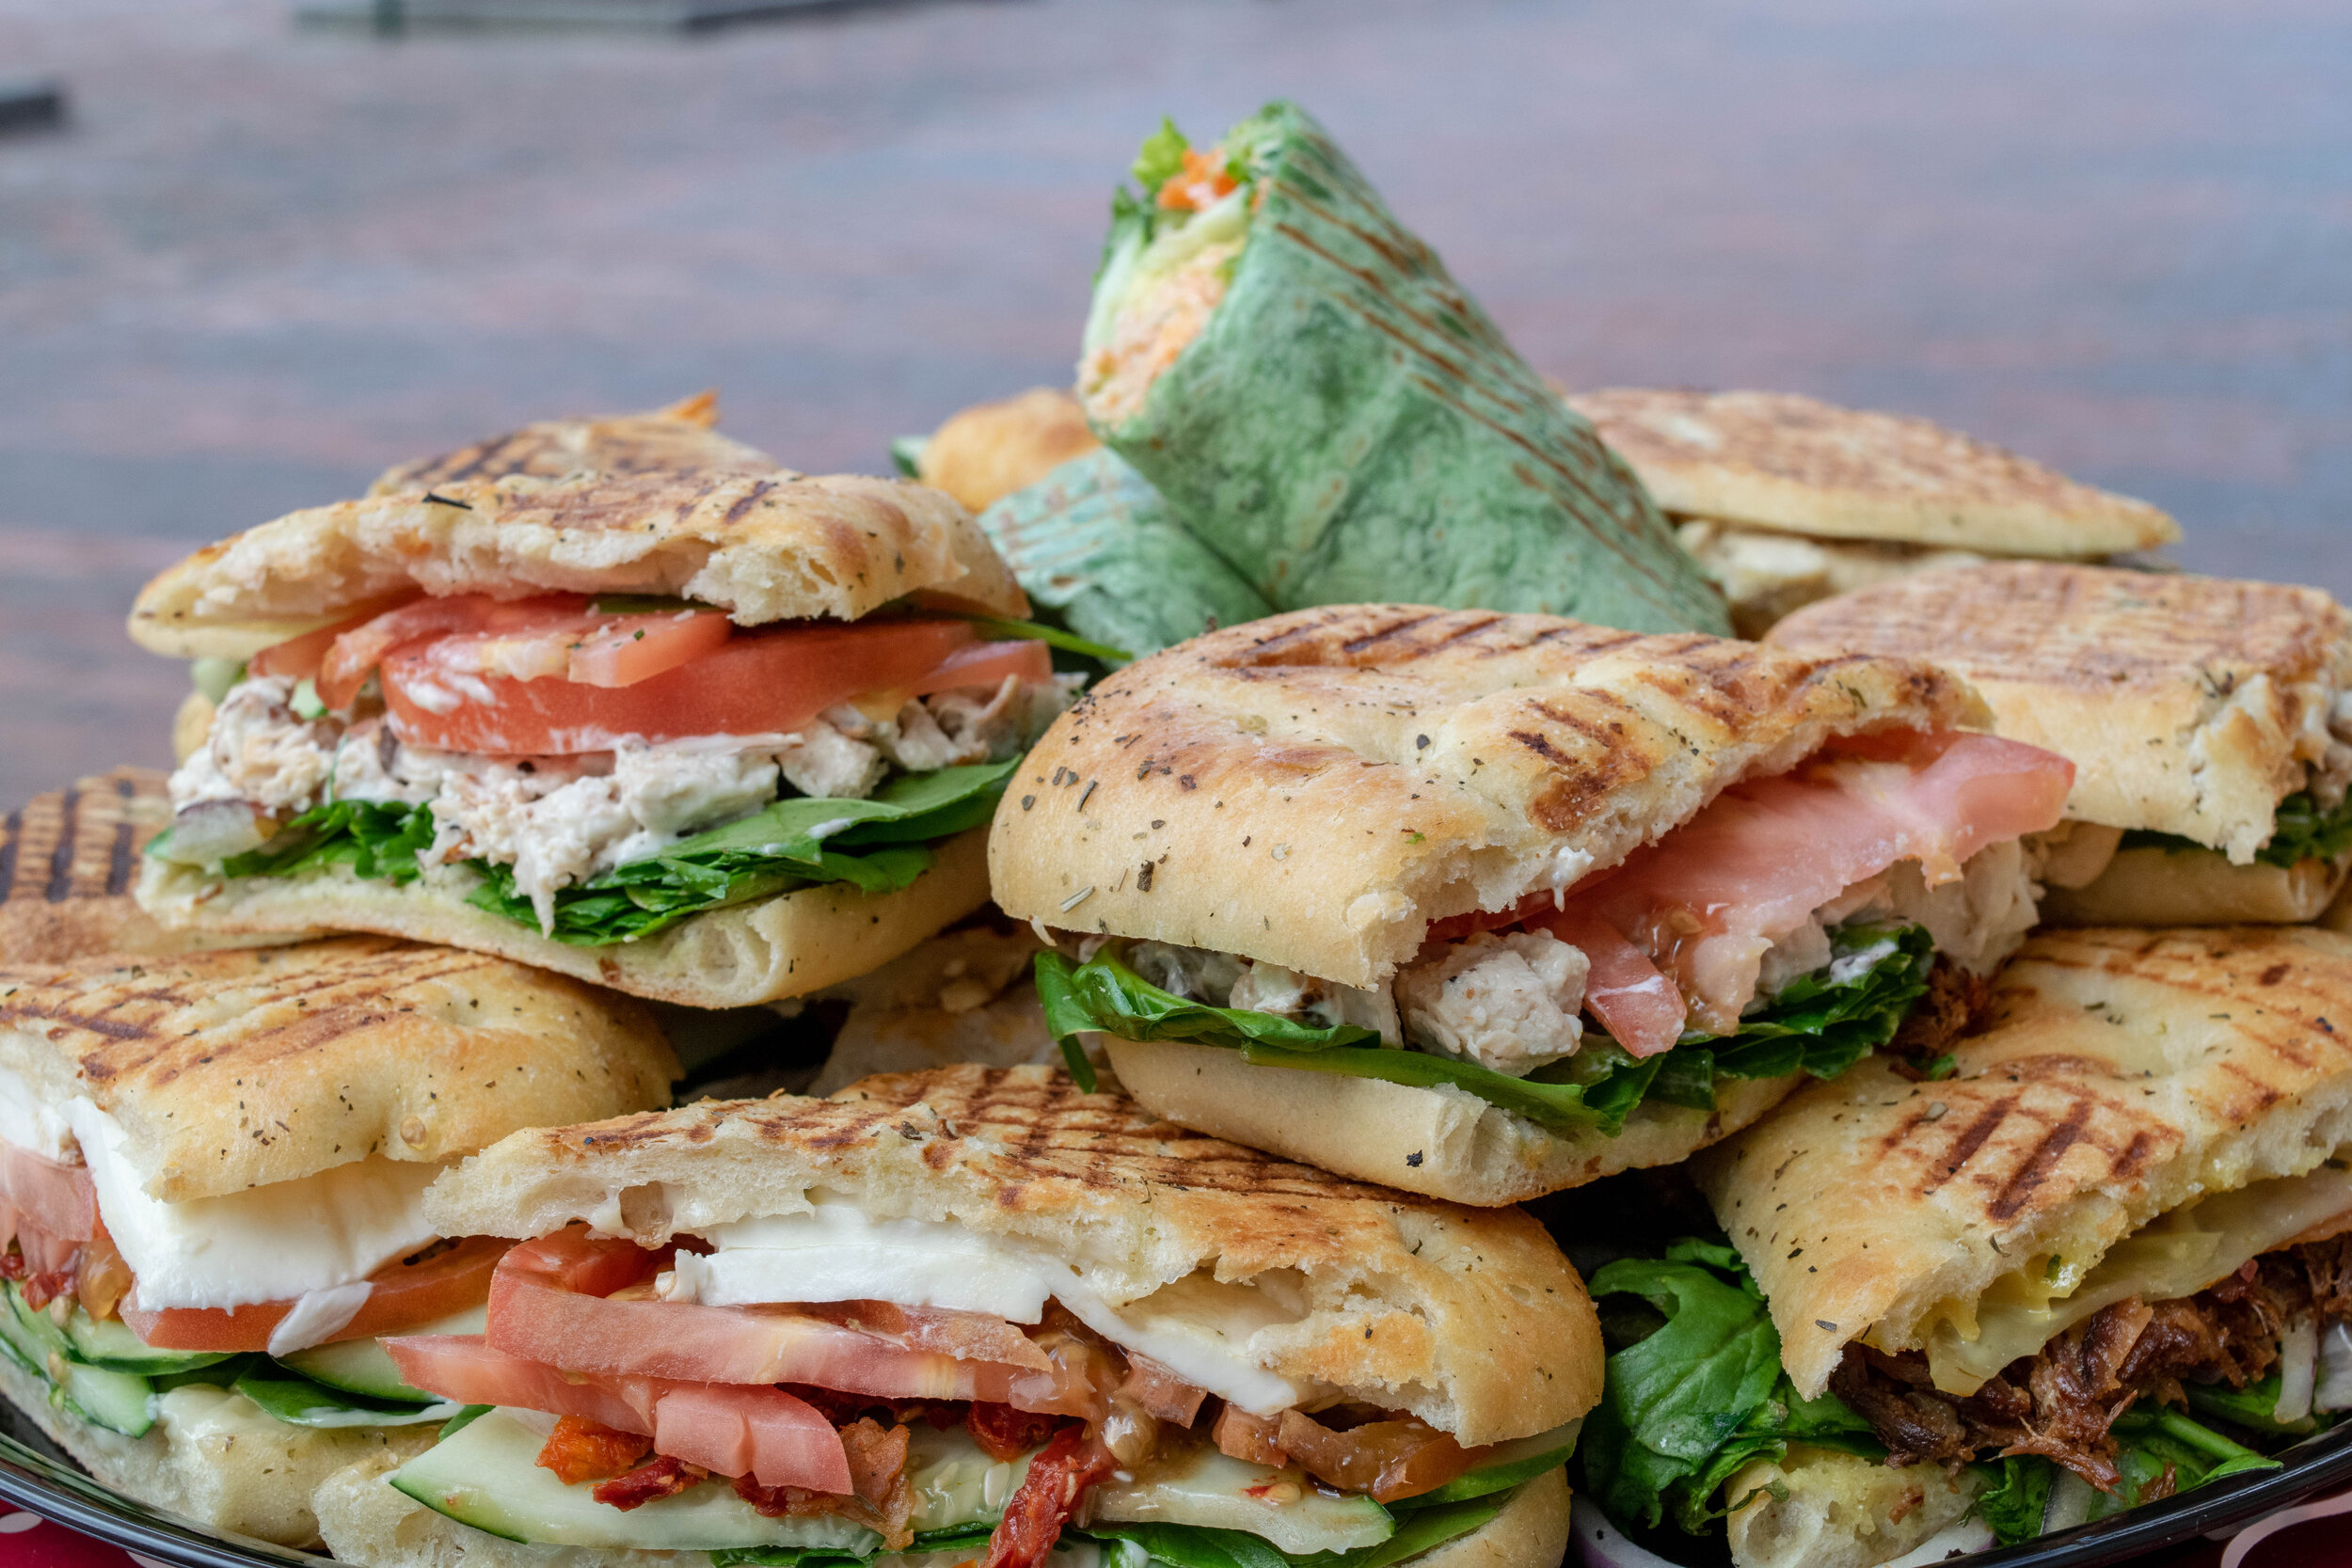 Sandwich Platter - ENJOY FIVE OF YOUR FAVORITE SANDWICHES CUT IN HALF.STARTING AT $42.50